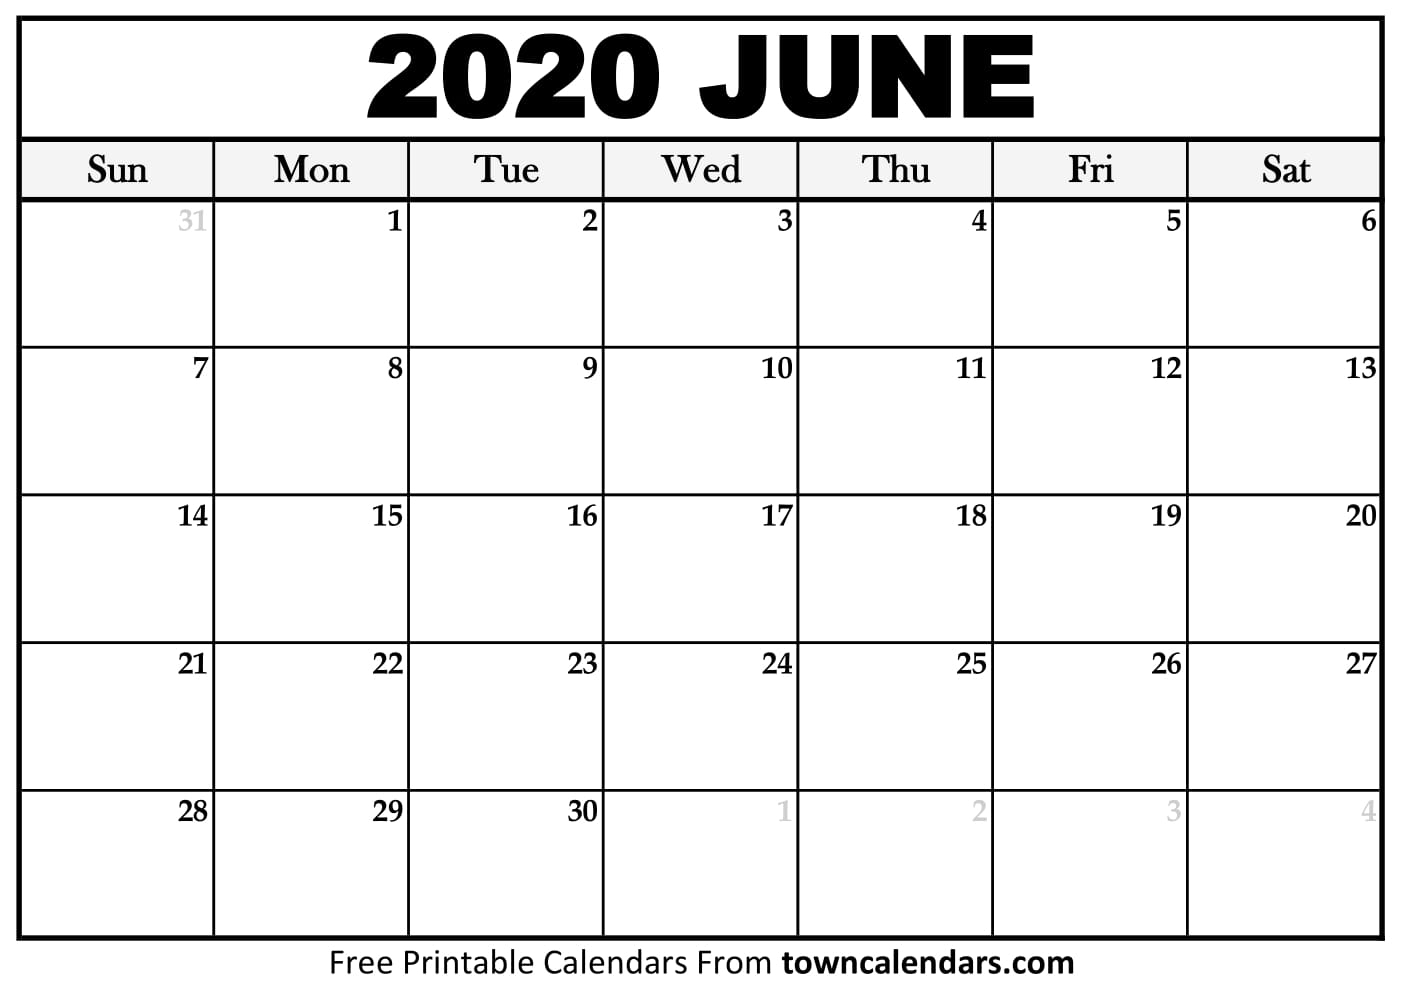 Catch Why Do They Have Calendars From June To June